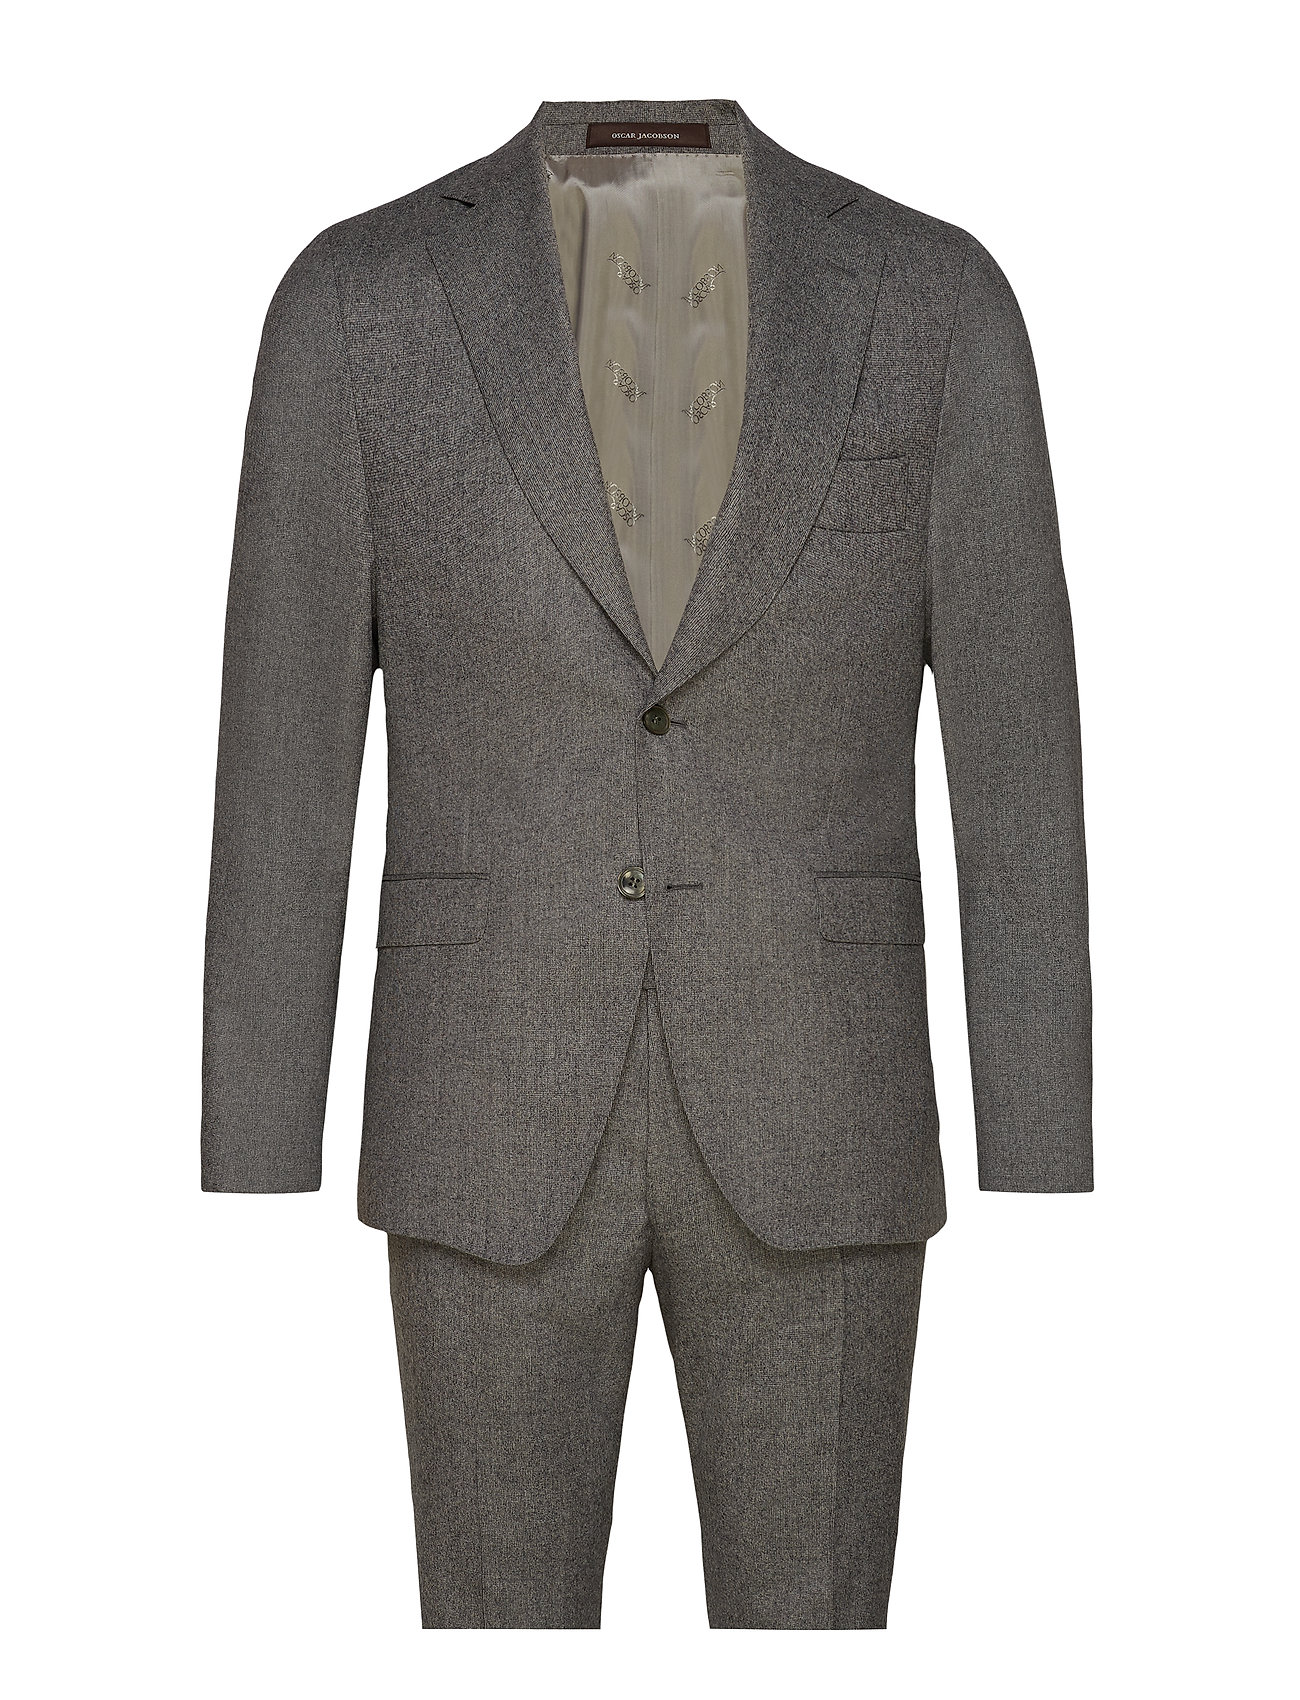 Oscar Jacobson Ego Suit - 134 - GREY